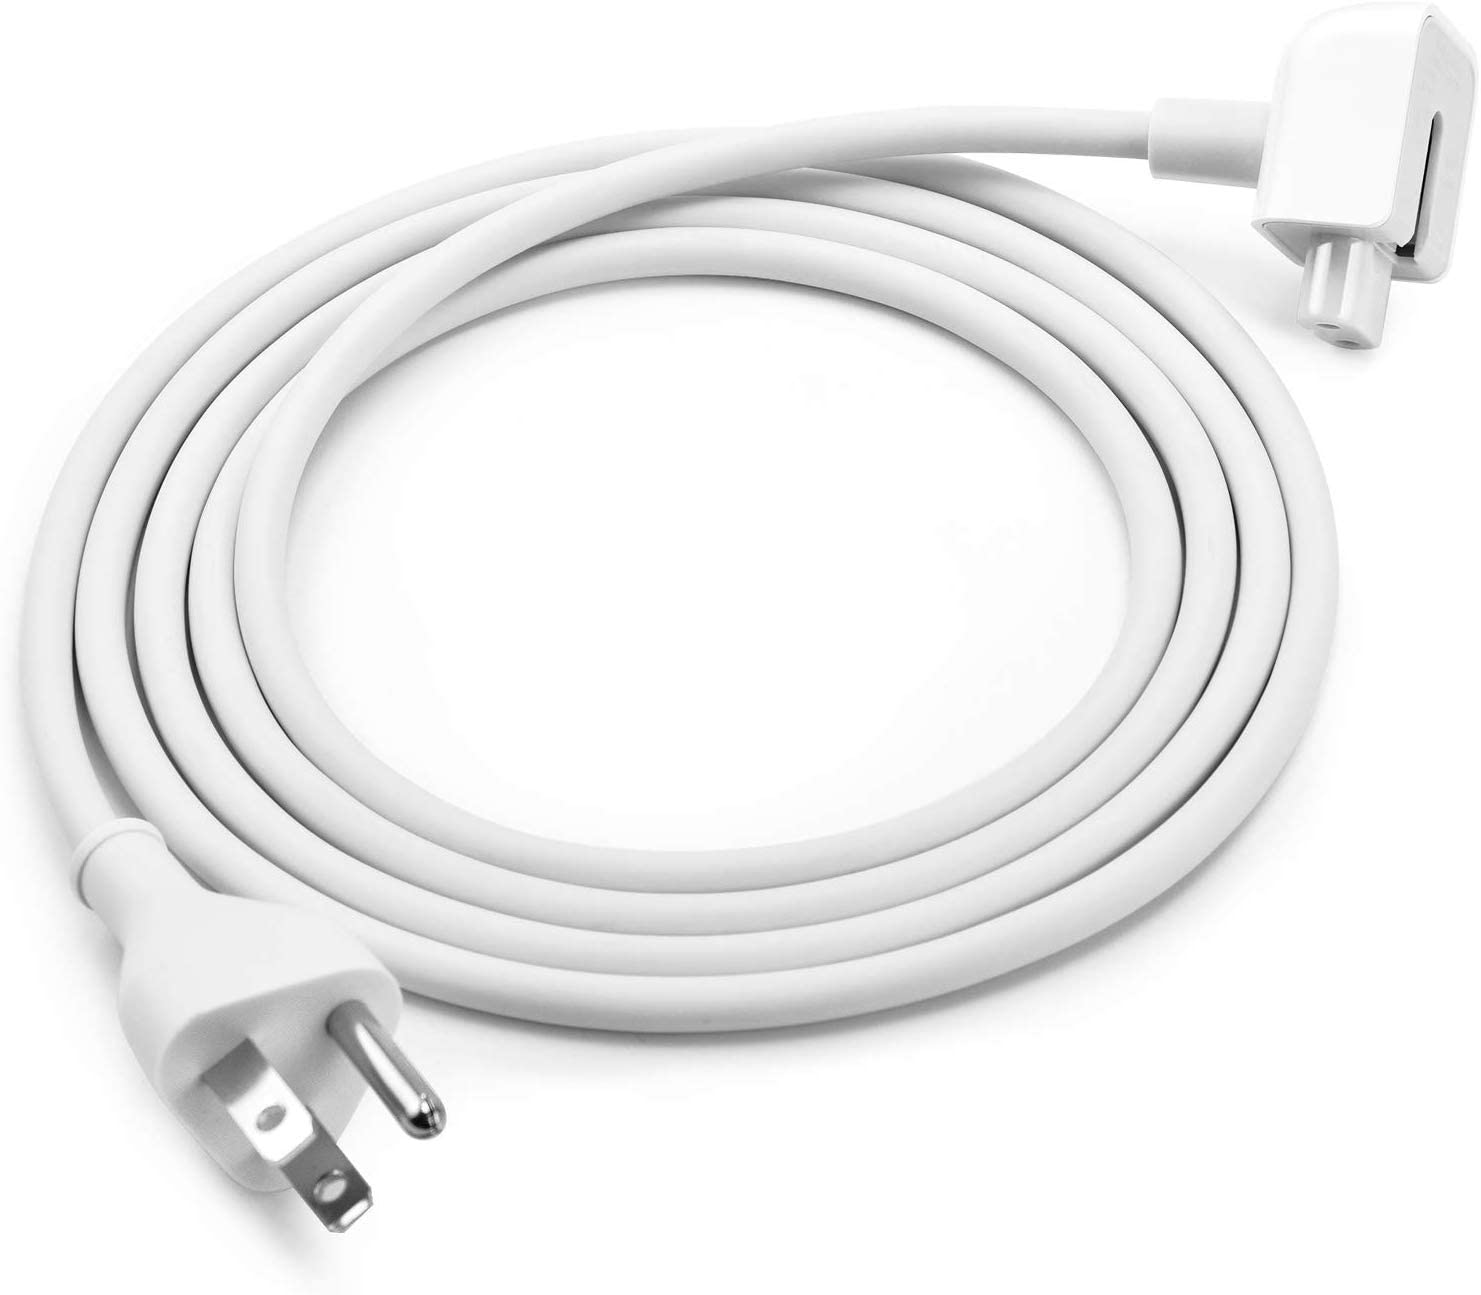 Genuine Apple Power Cord for Macbook// Pro Charger Power Extension Cable 6ft